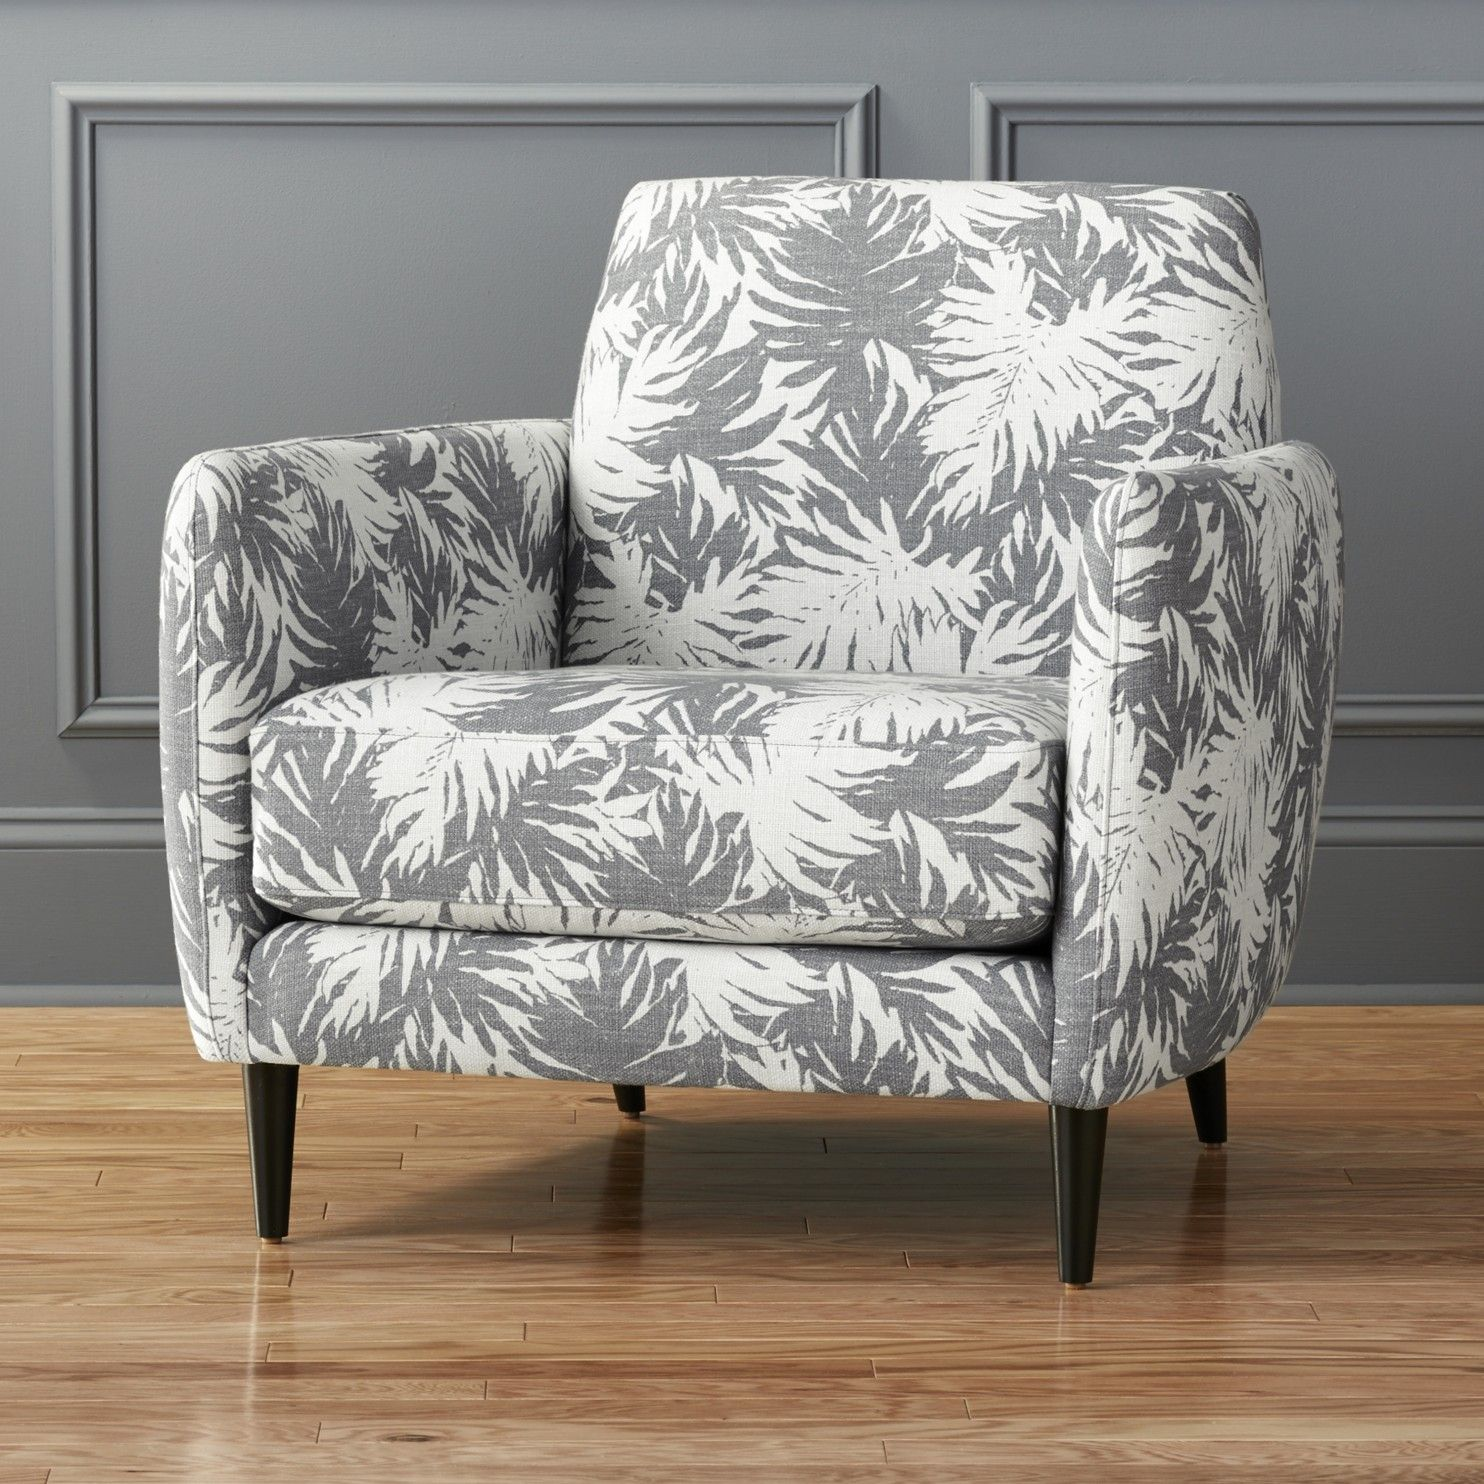 How to choose the perfect reading chair - The Washington Post